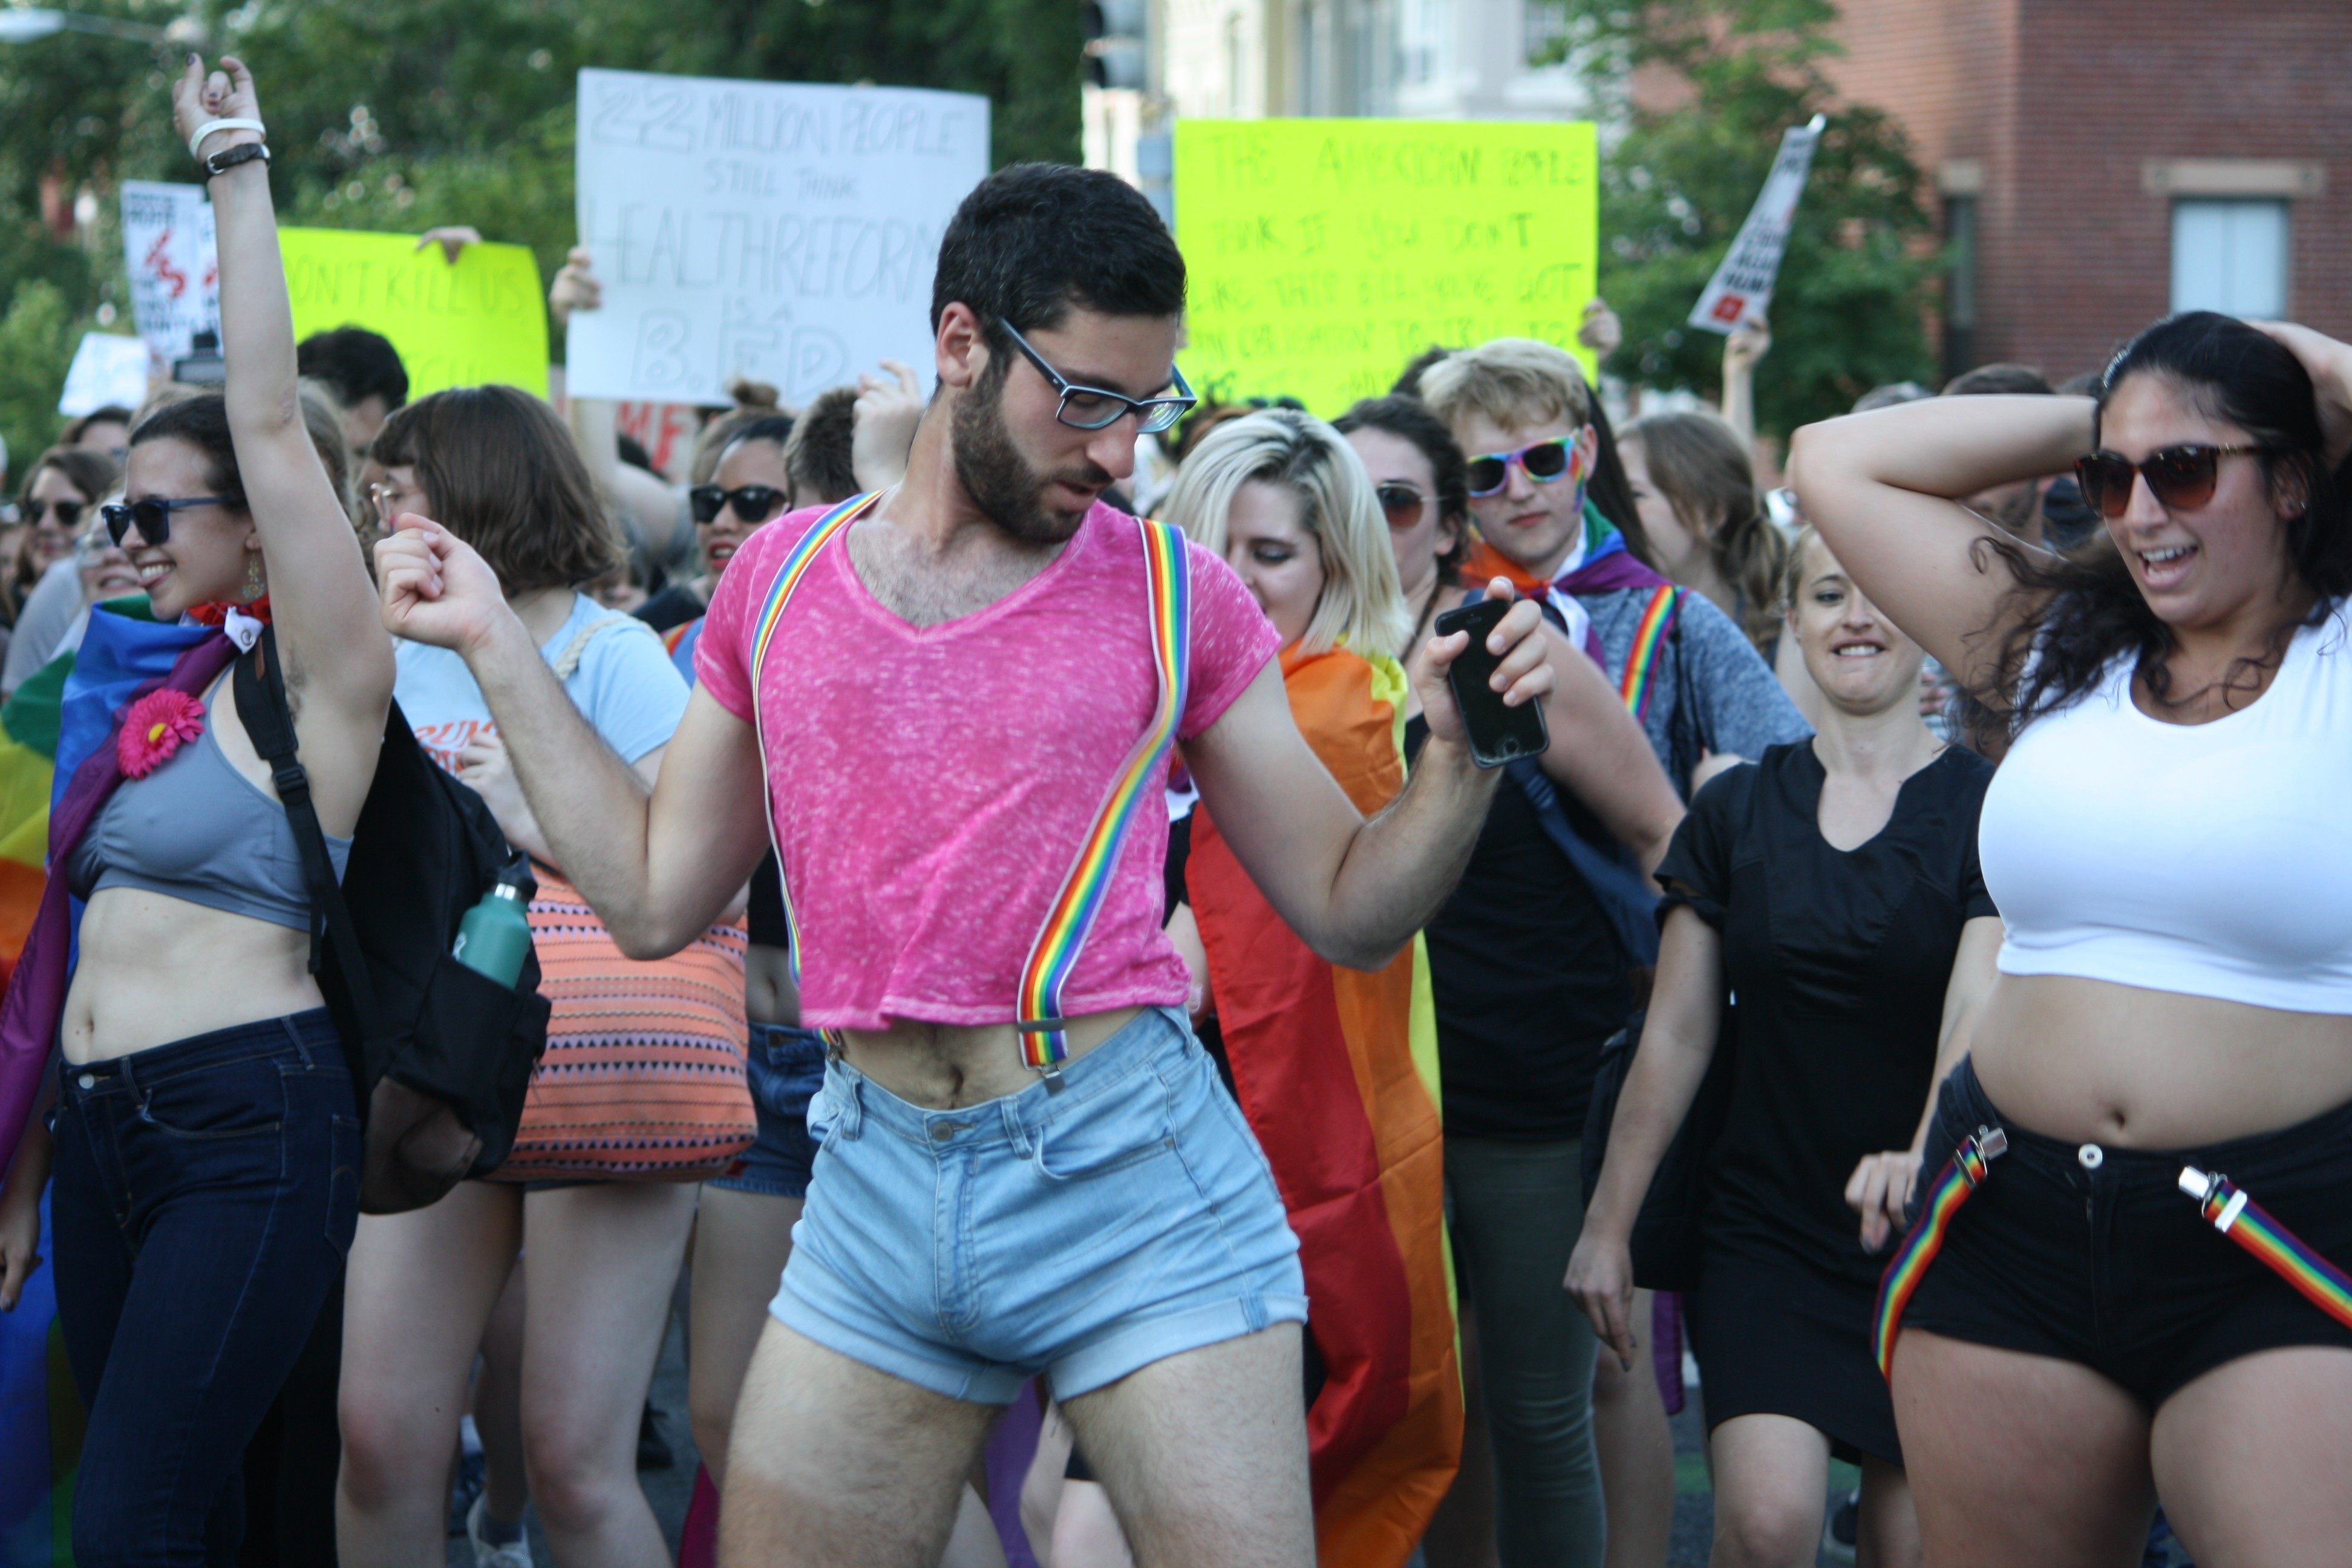 Comment Organiser Un Party D Ado queer dance party descends on mcconnell's house, dancing